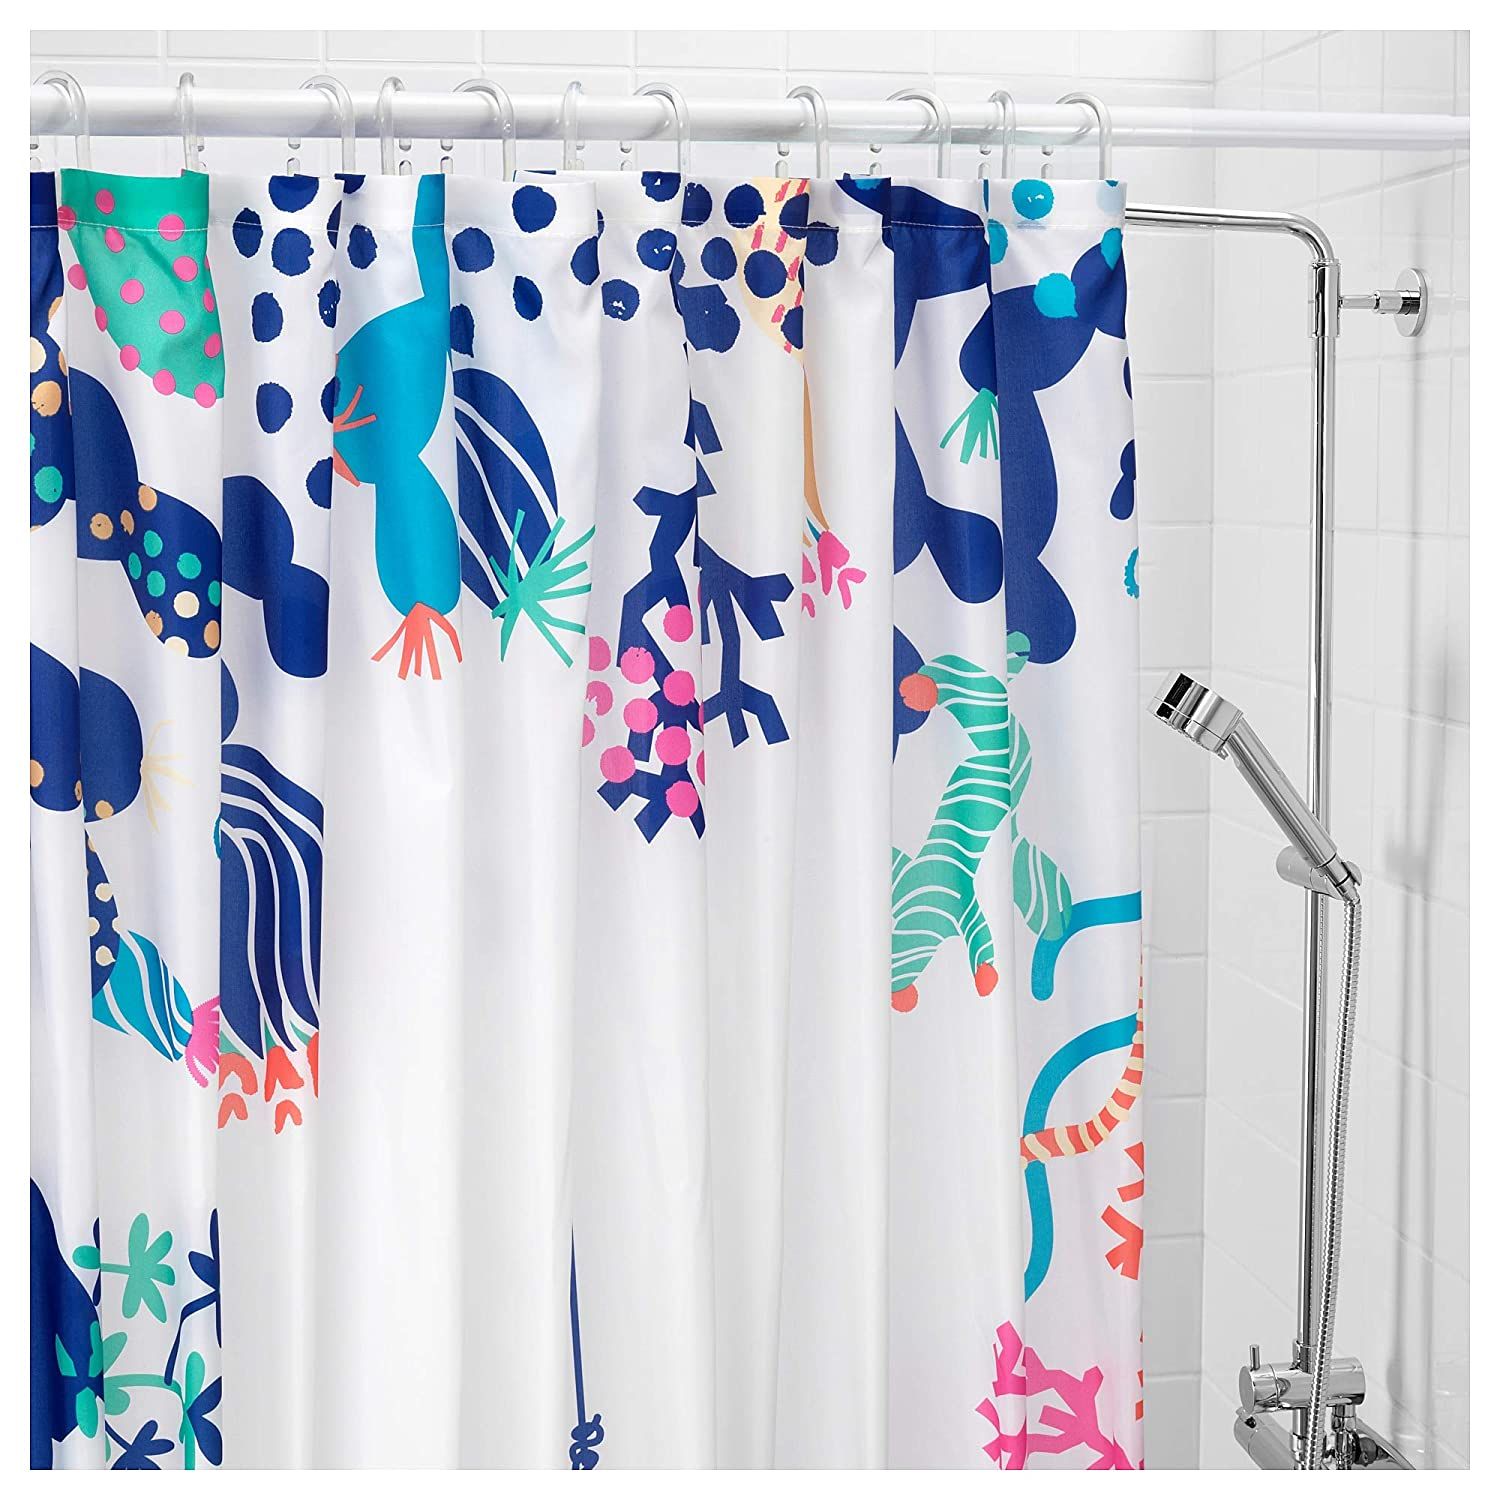 Kess InHouse S Seema Z Lily Explosion Pink Mulitcolor Shower Curtain 69 by 70